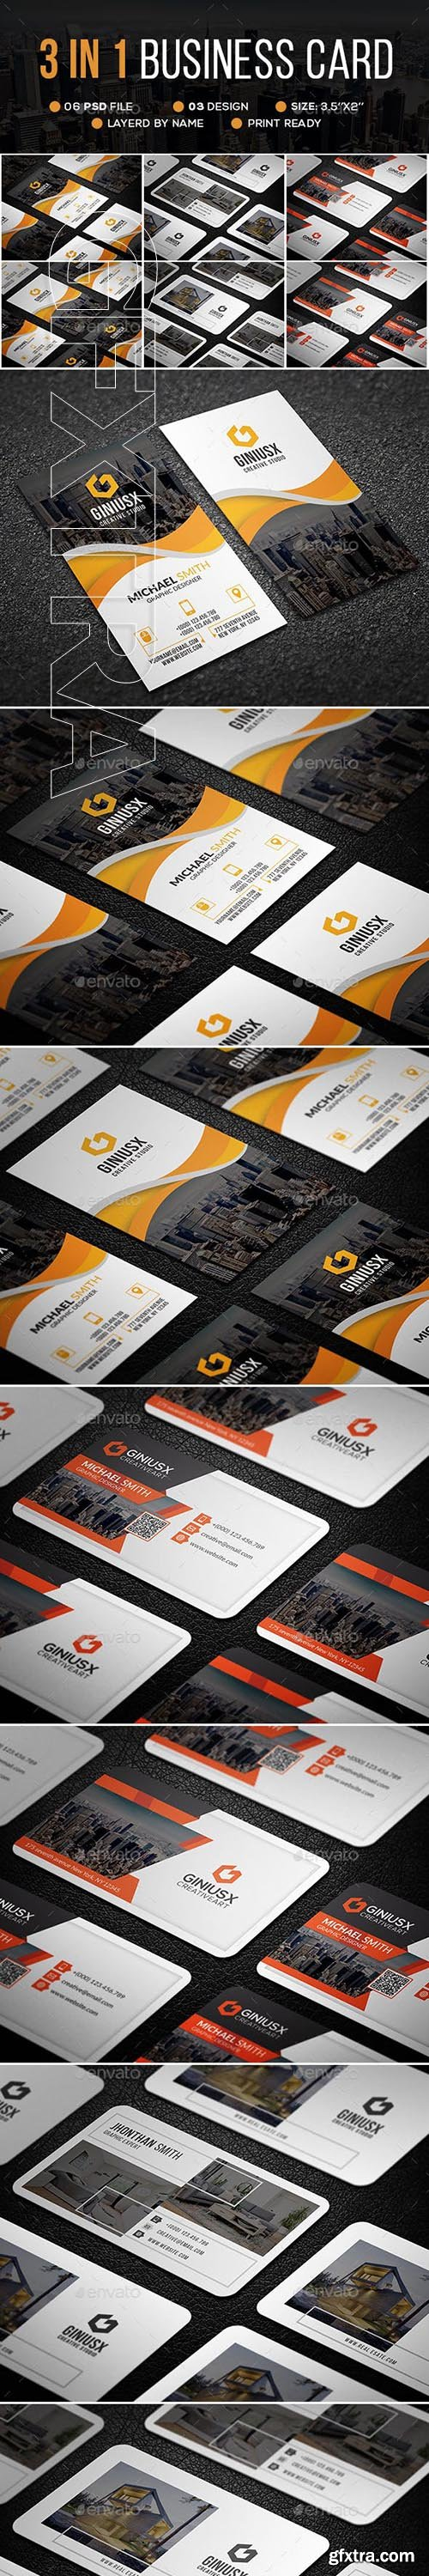 GraphicRiver - 3 in 1 Business Card Bundle 23117698